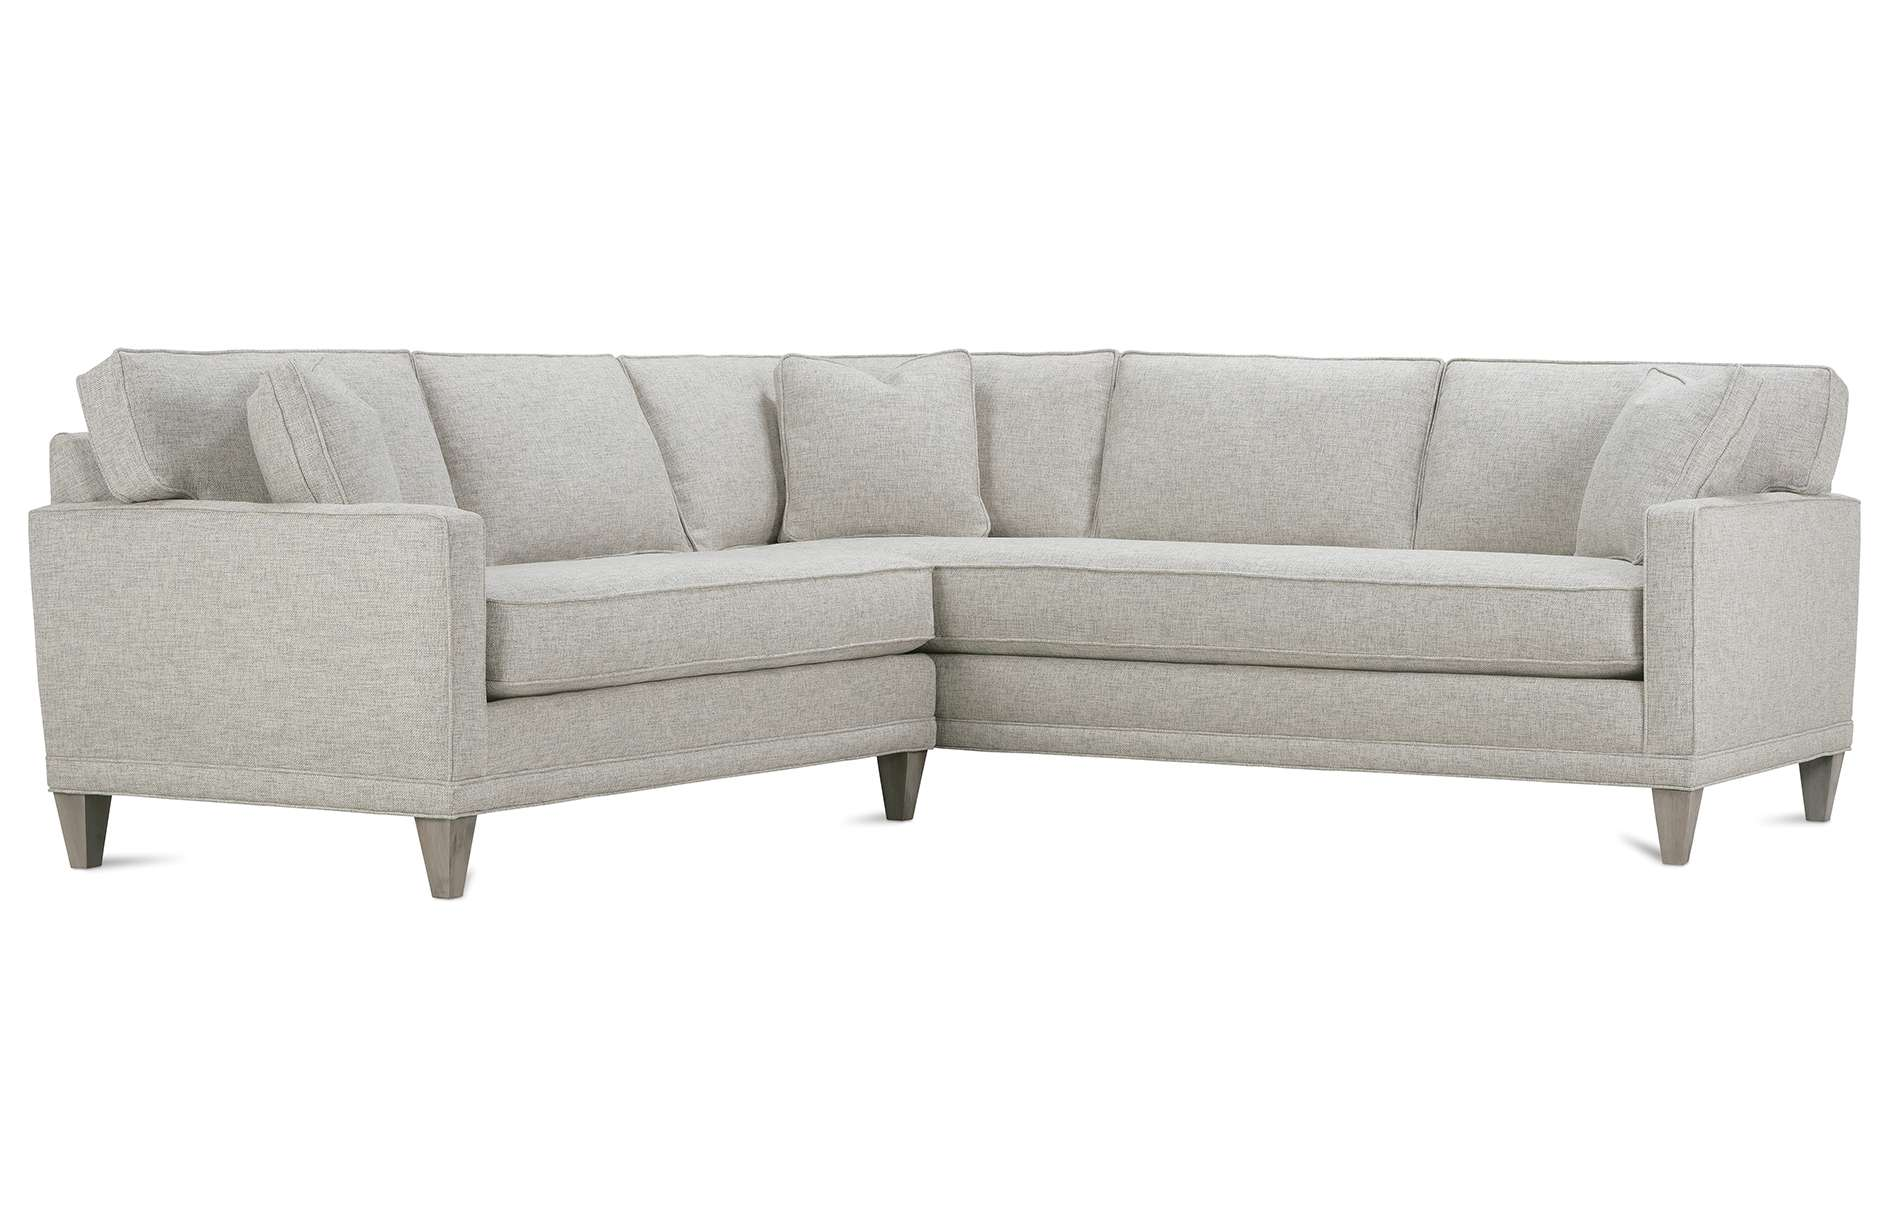 Townsend Sectional, starting at $2399